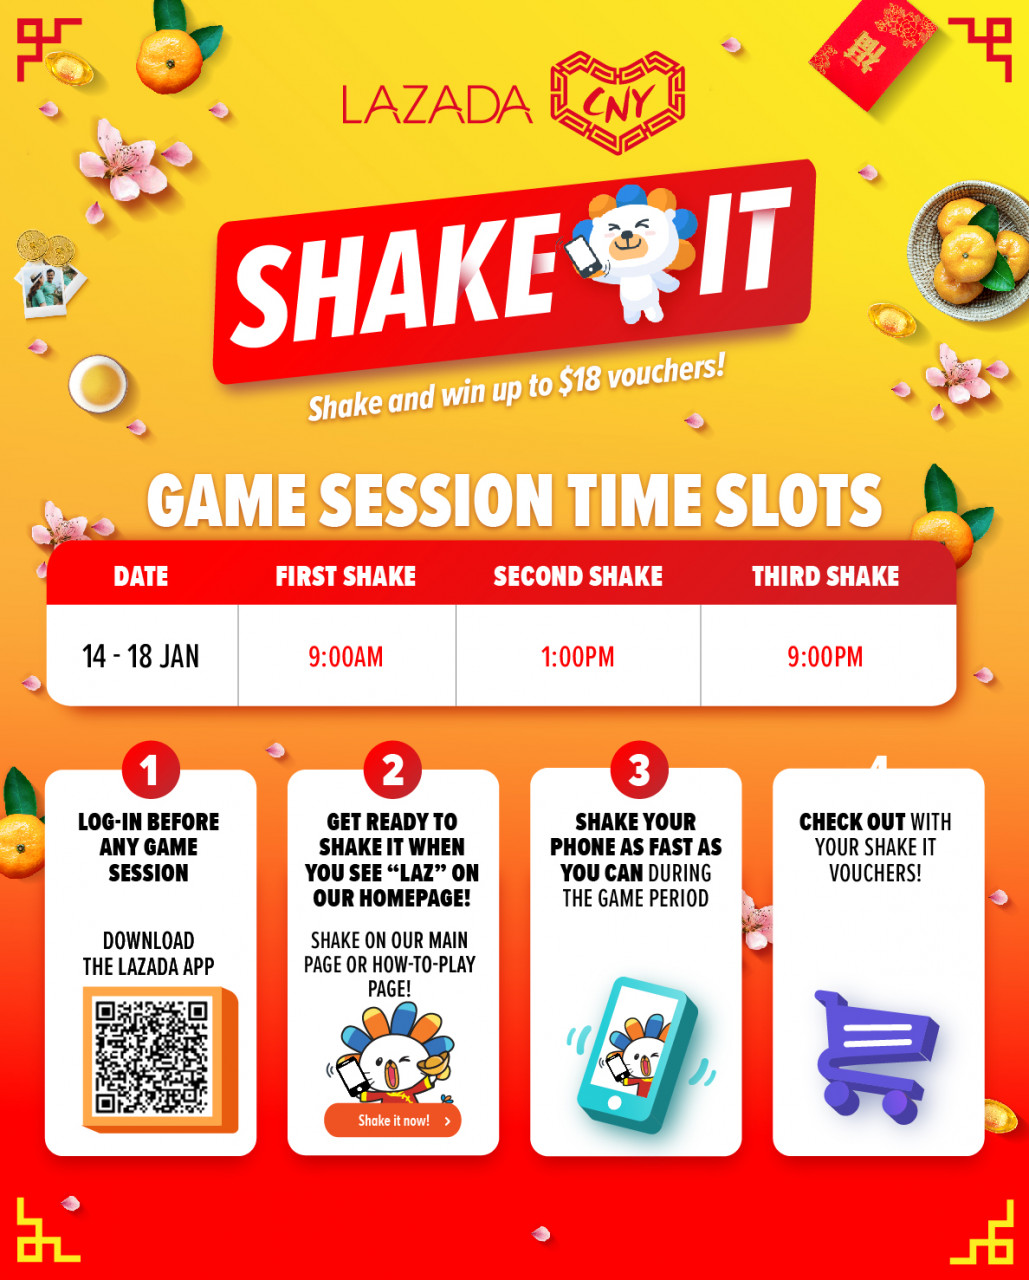 lazada shake it deal 2019 promo code